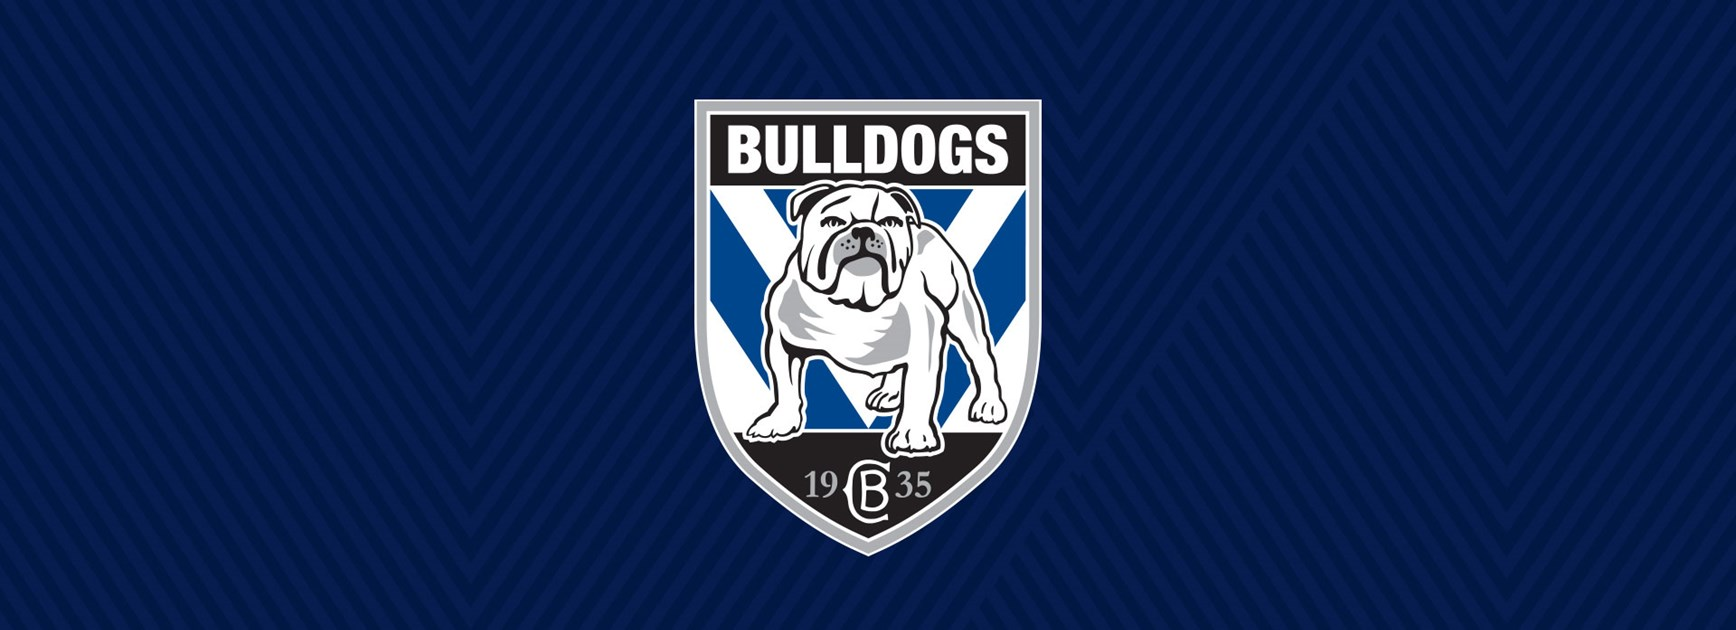 Bulldogs respond to Dylan Napa sanction